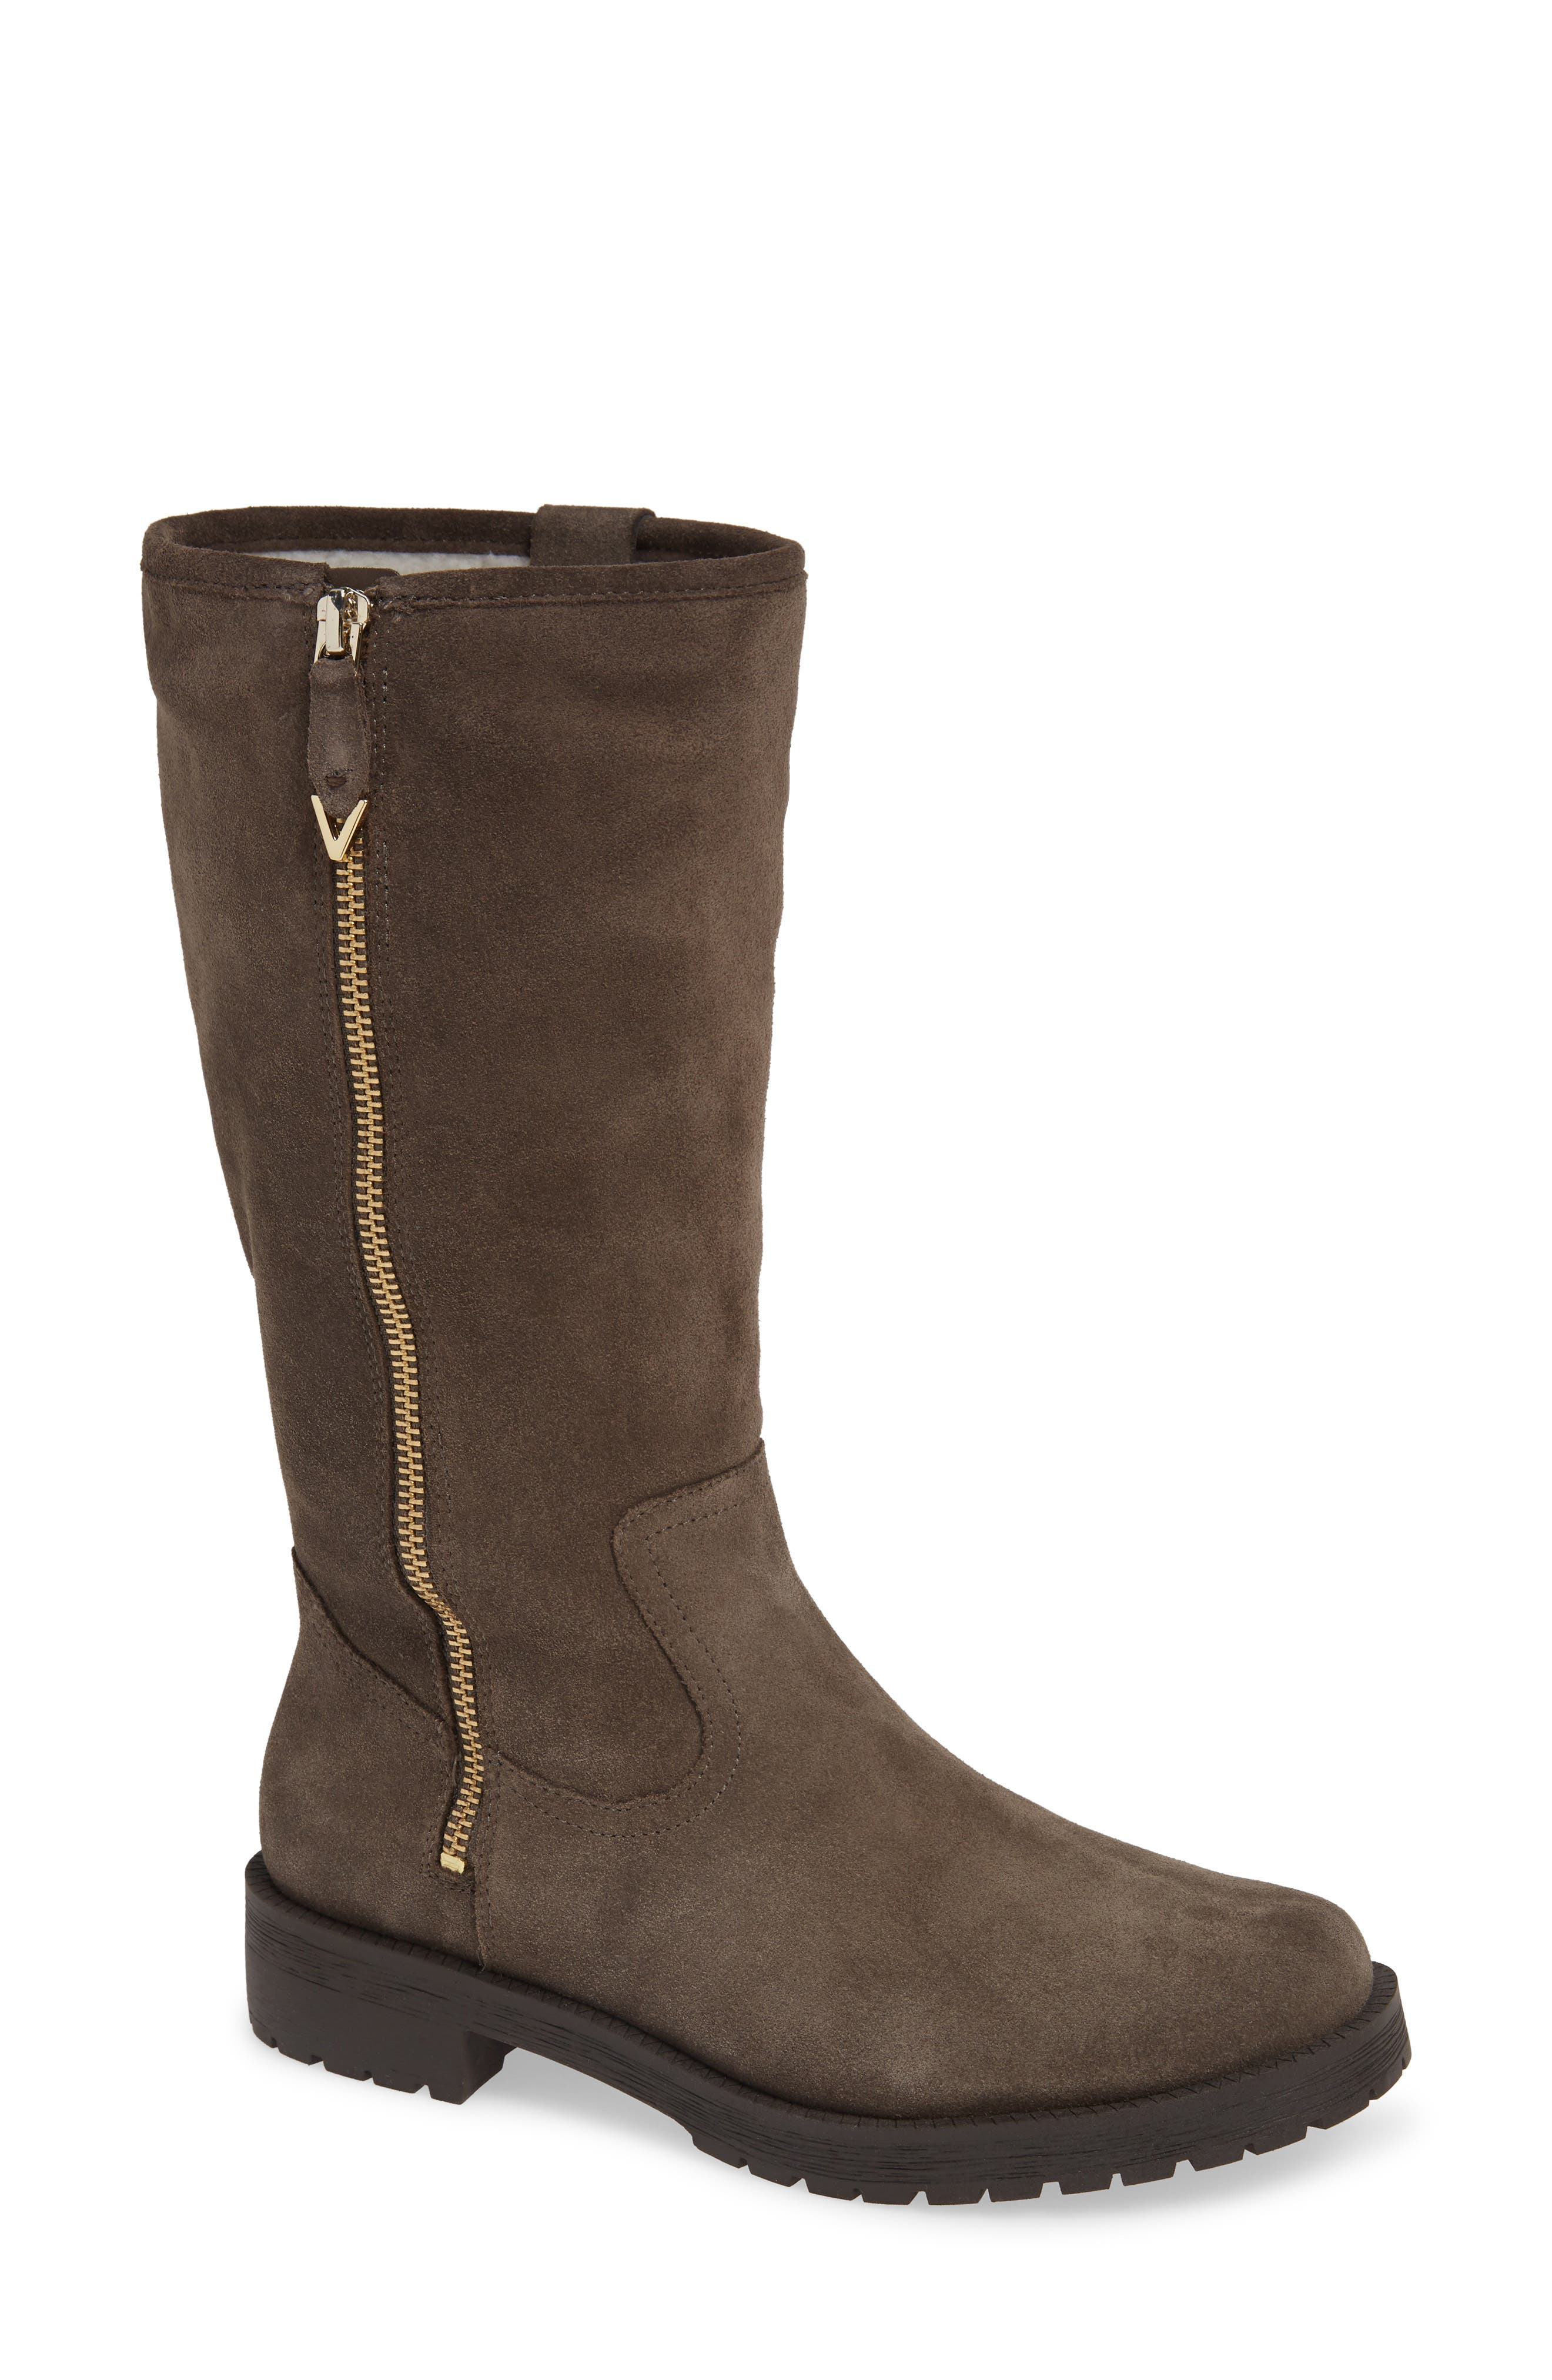 Mica Boot,                             Main thumbnail 1, color,                             GREIGE SUEDE